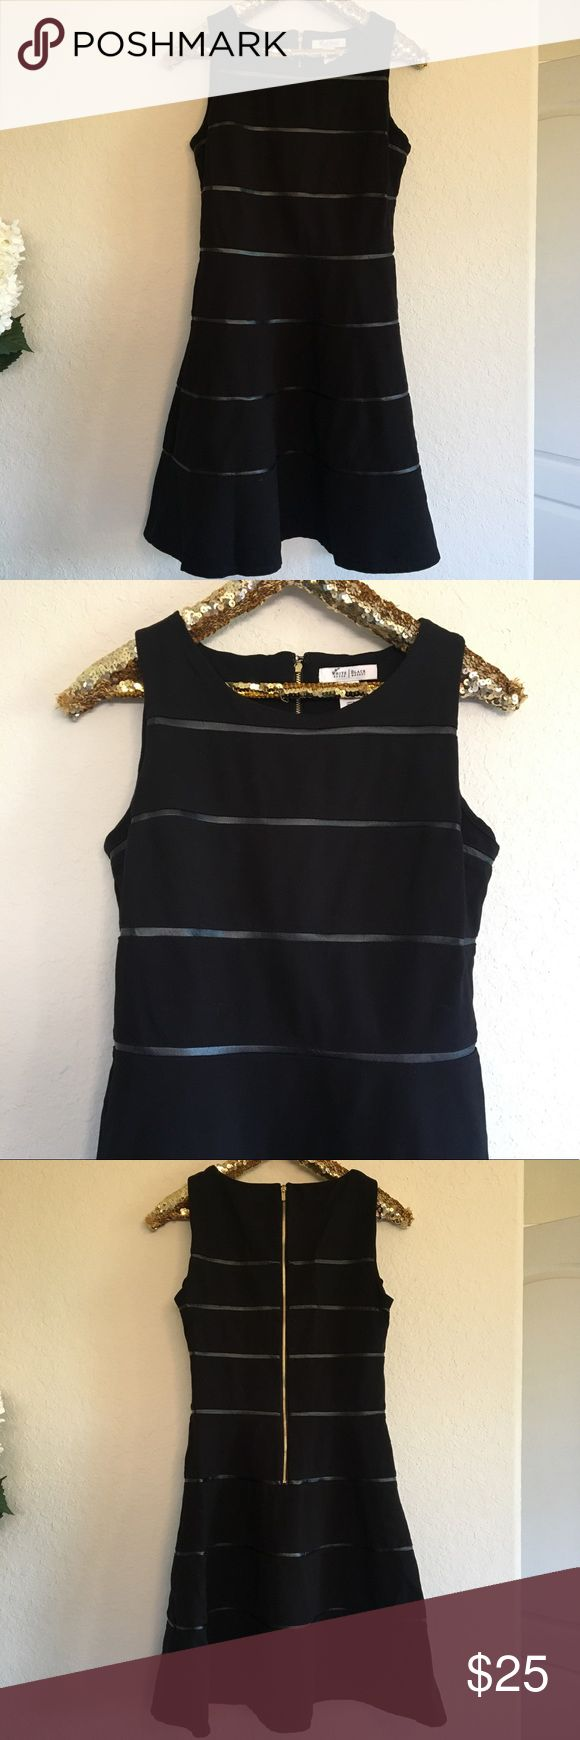 White House Black Market Striped Leather Dress This White House Black Market dress is in amazing condition and is perfect for the fall and winter season! The fit-and-flare style is so stylish and looks great on all body shapes!  🚭 From a smoke-free home ❌ No trades or off PoshMark sales 🛍 Bundles welcome and encouraged 👌🏻 Reasonable offers welcome ⚡️ Same/next day shipping 🌬 All items are steamed before shipping White House Black Market Dresses